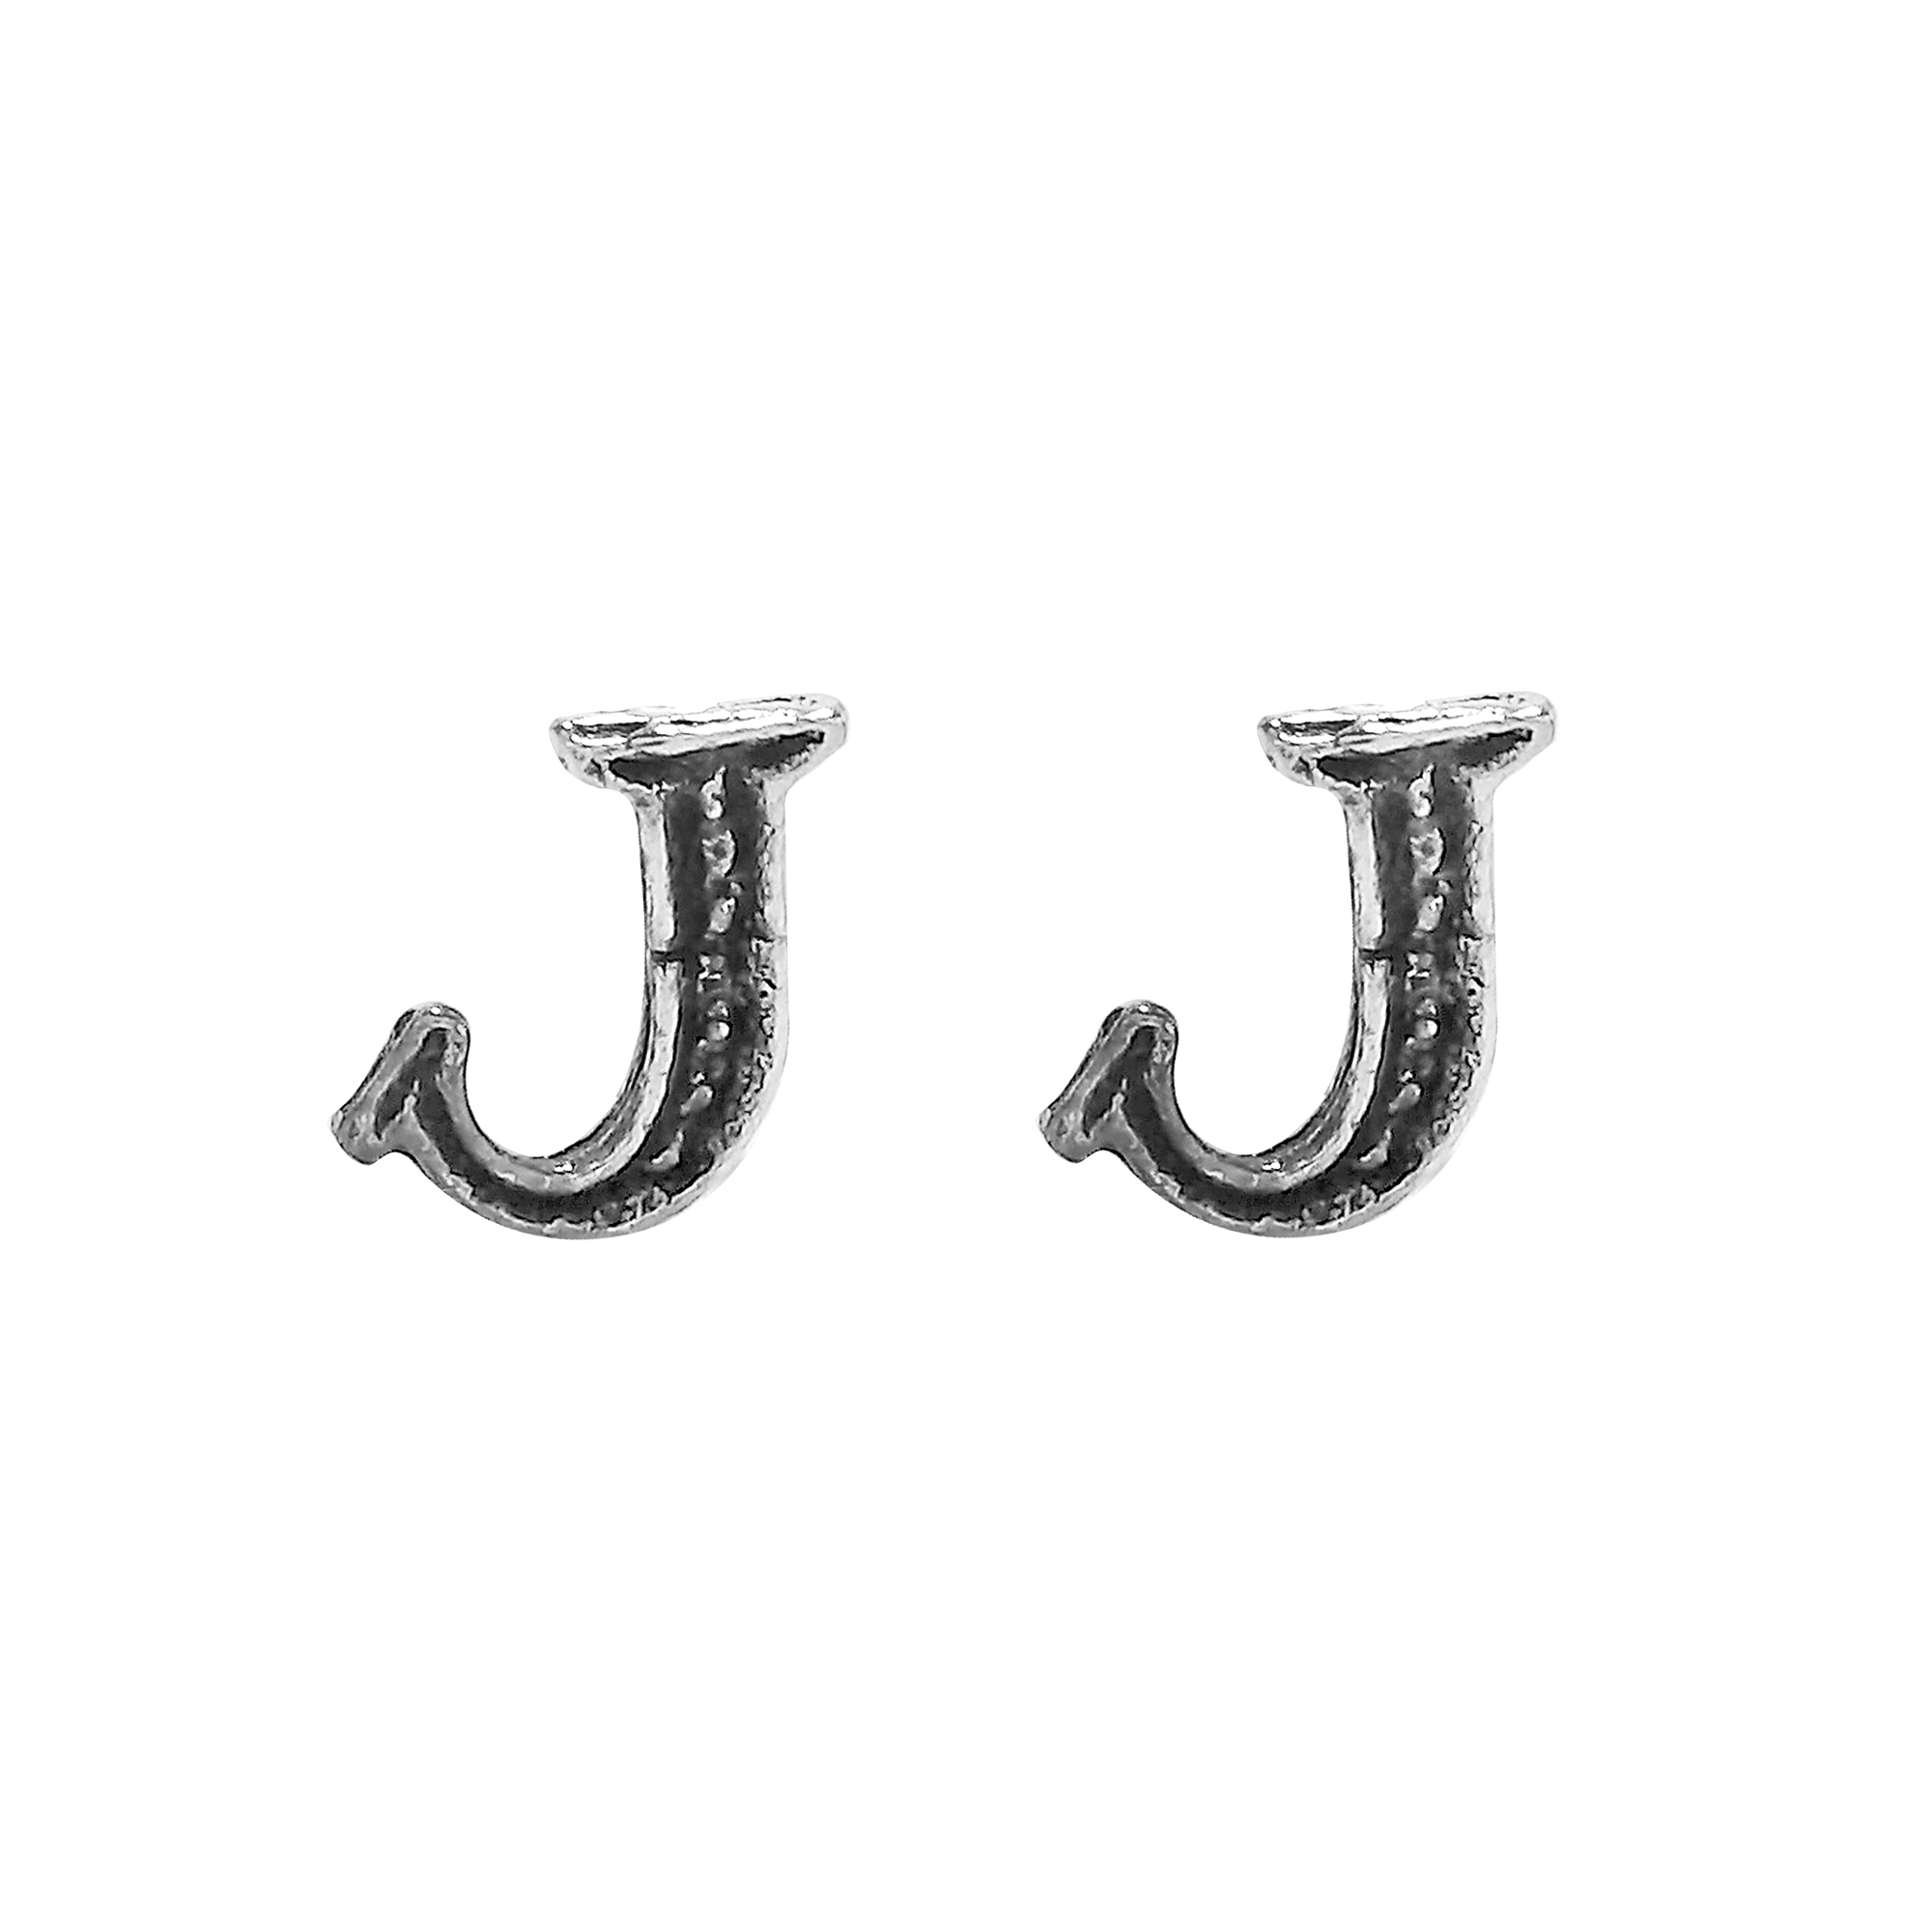 body women gold rock piercing men pin for jewelry pair earrings cool ear stud